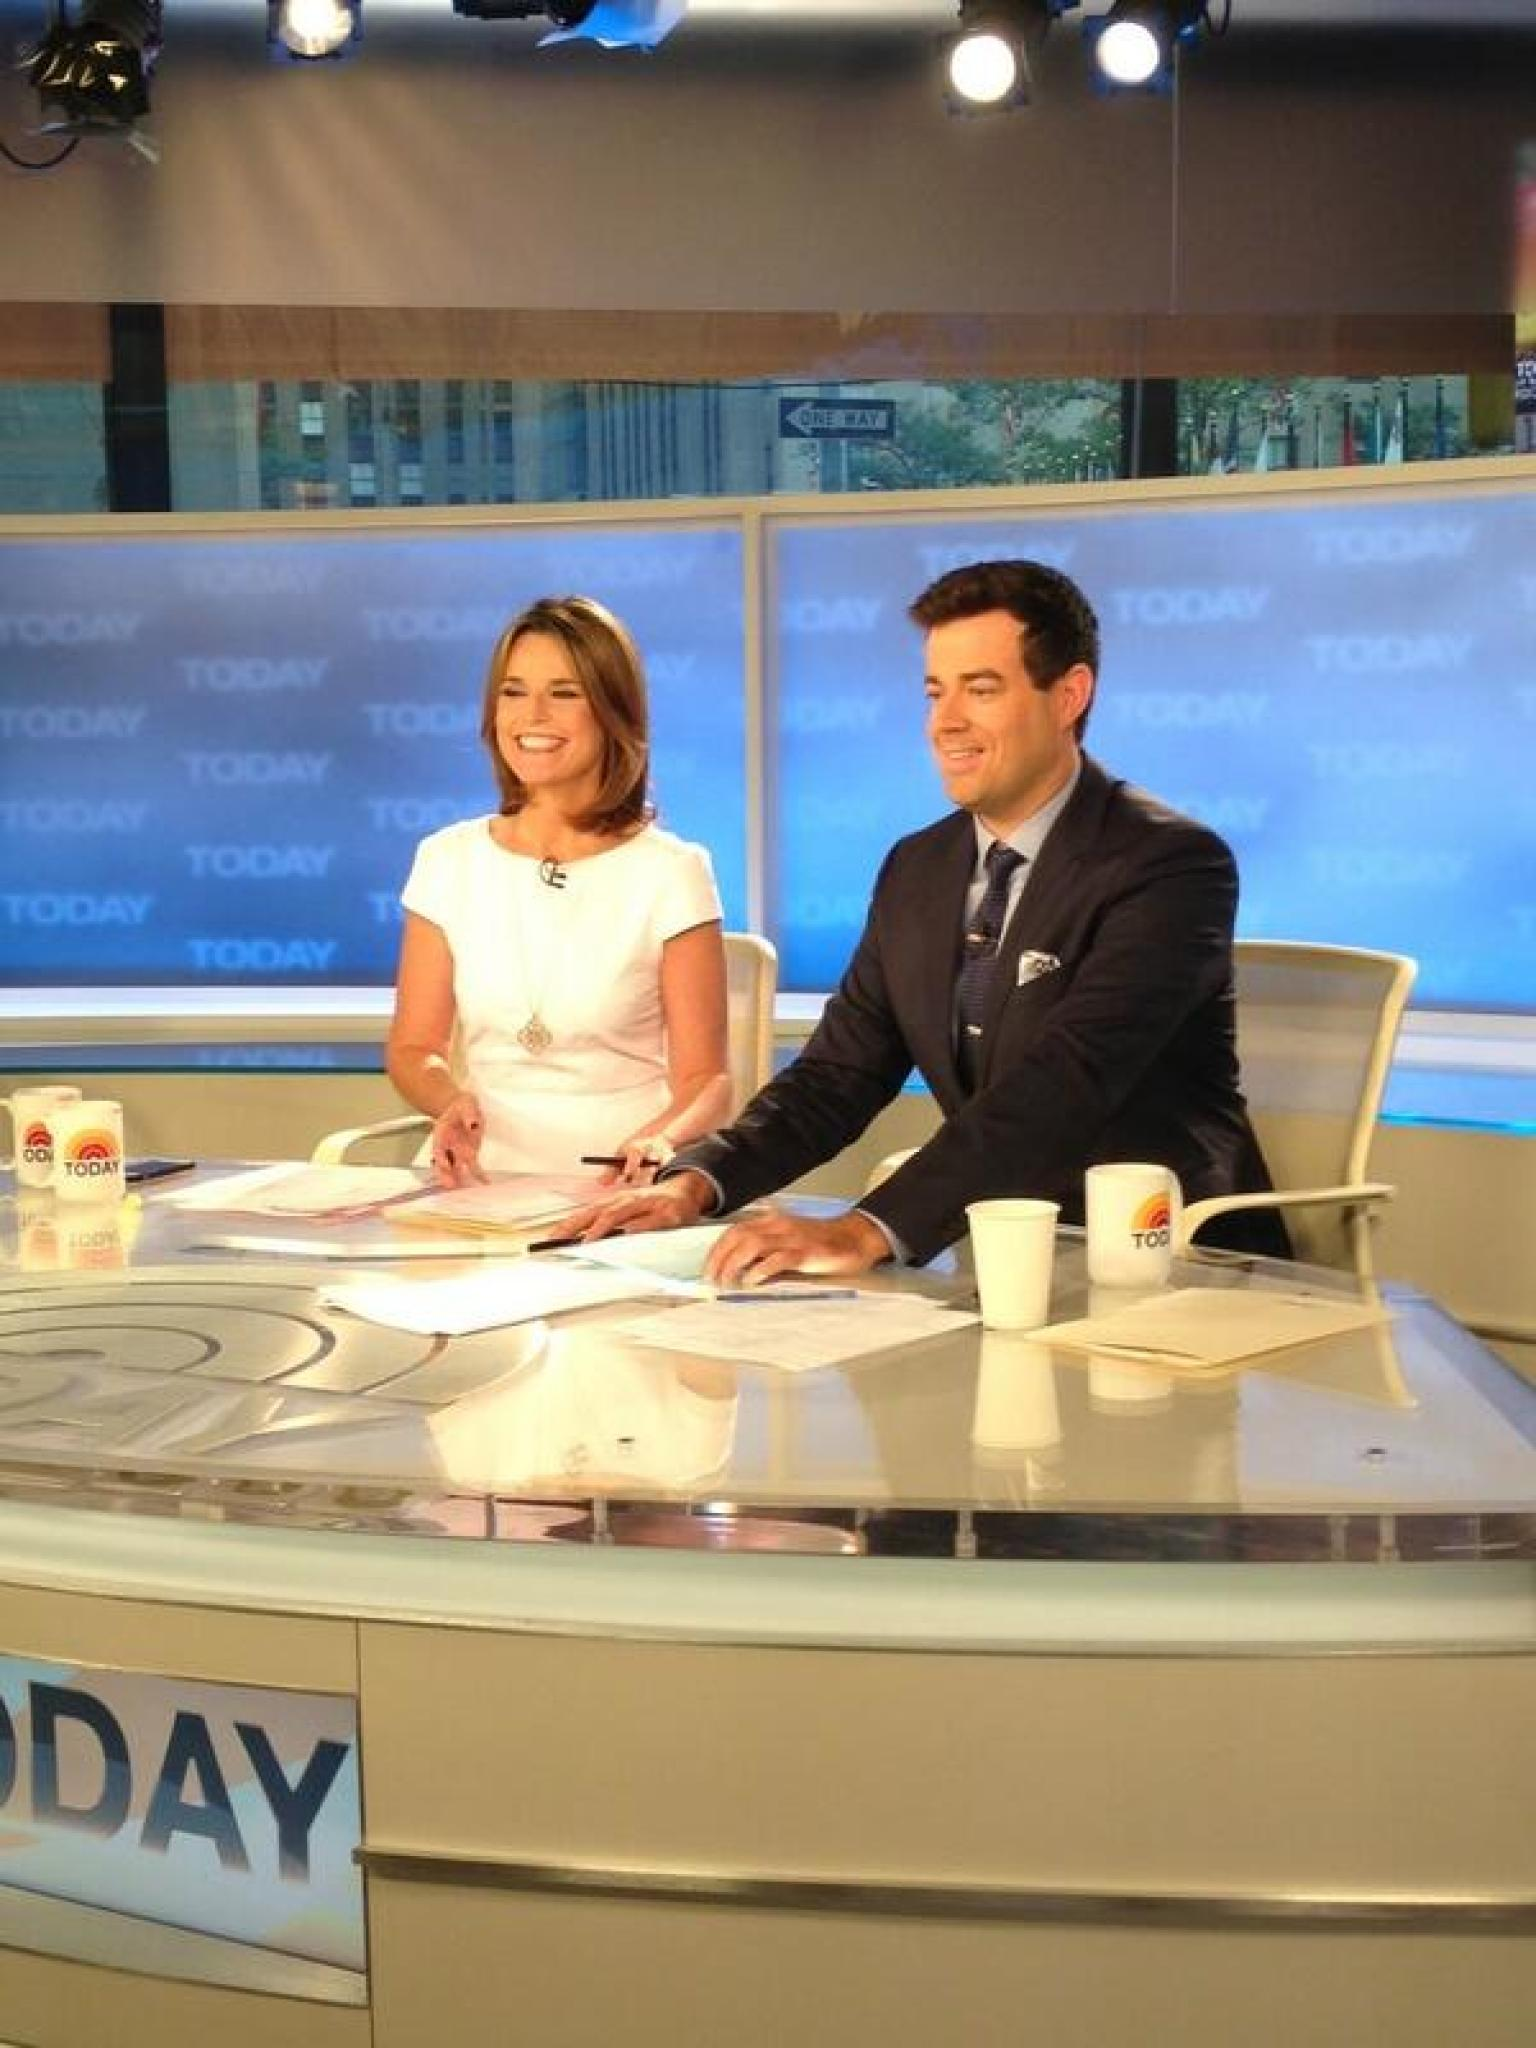 Carson Daly Fills In For Matt Lauer On The 'Today' Show ...